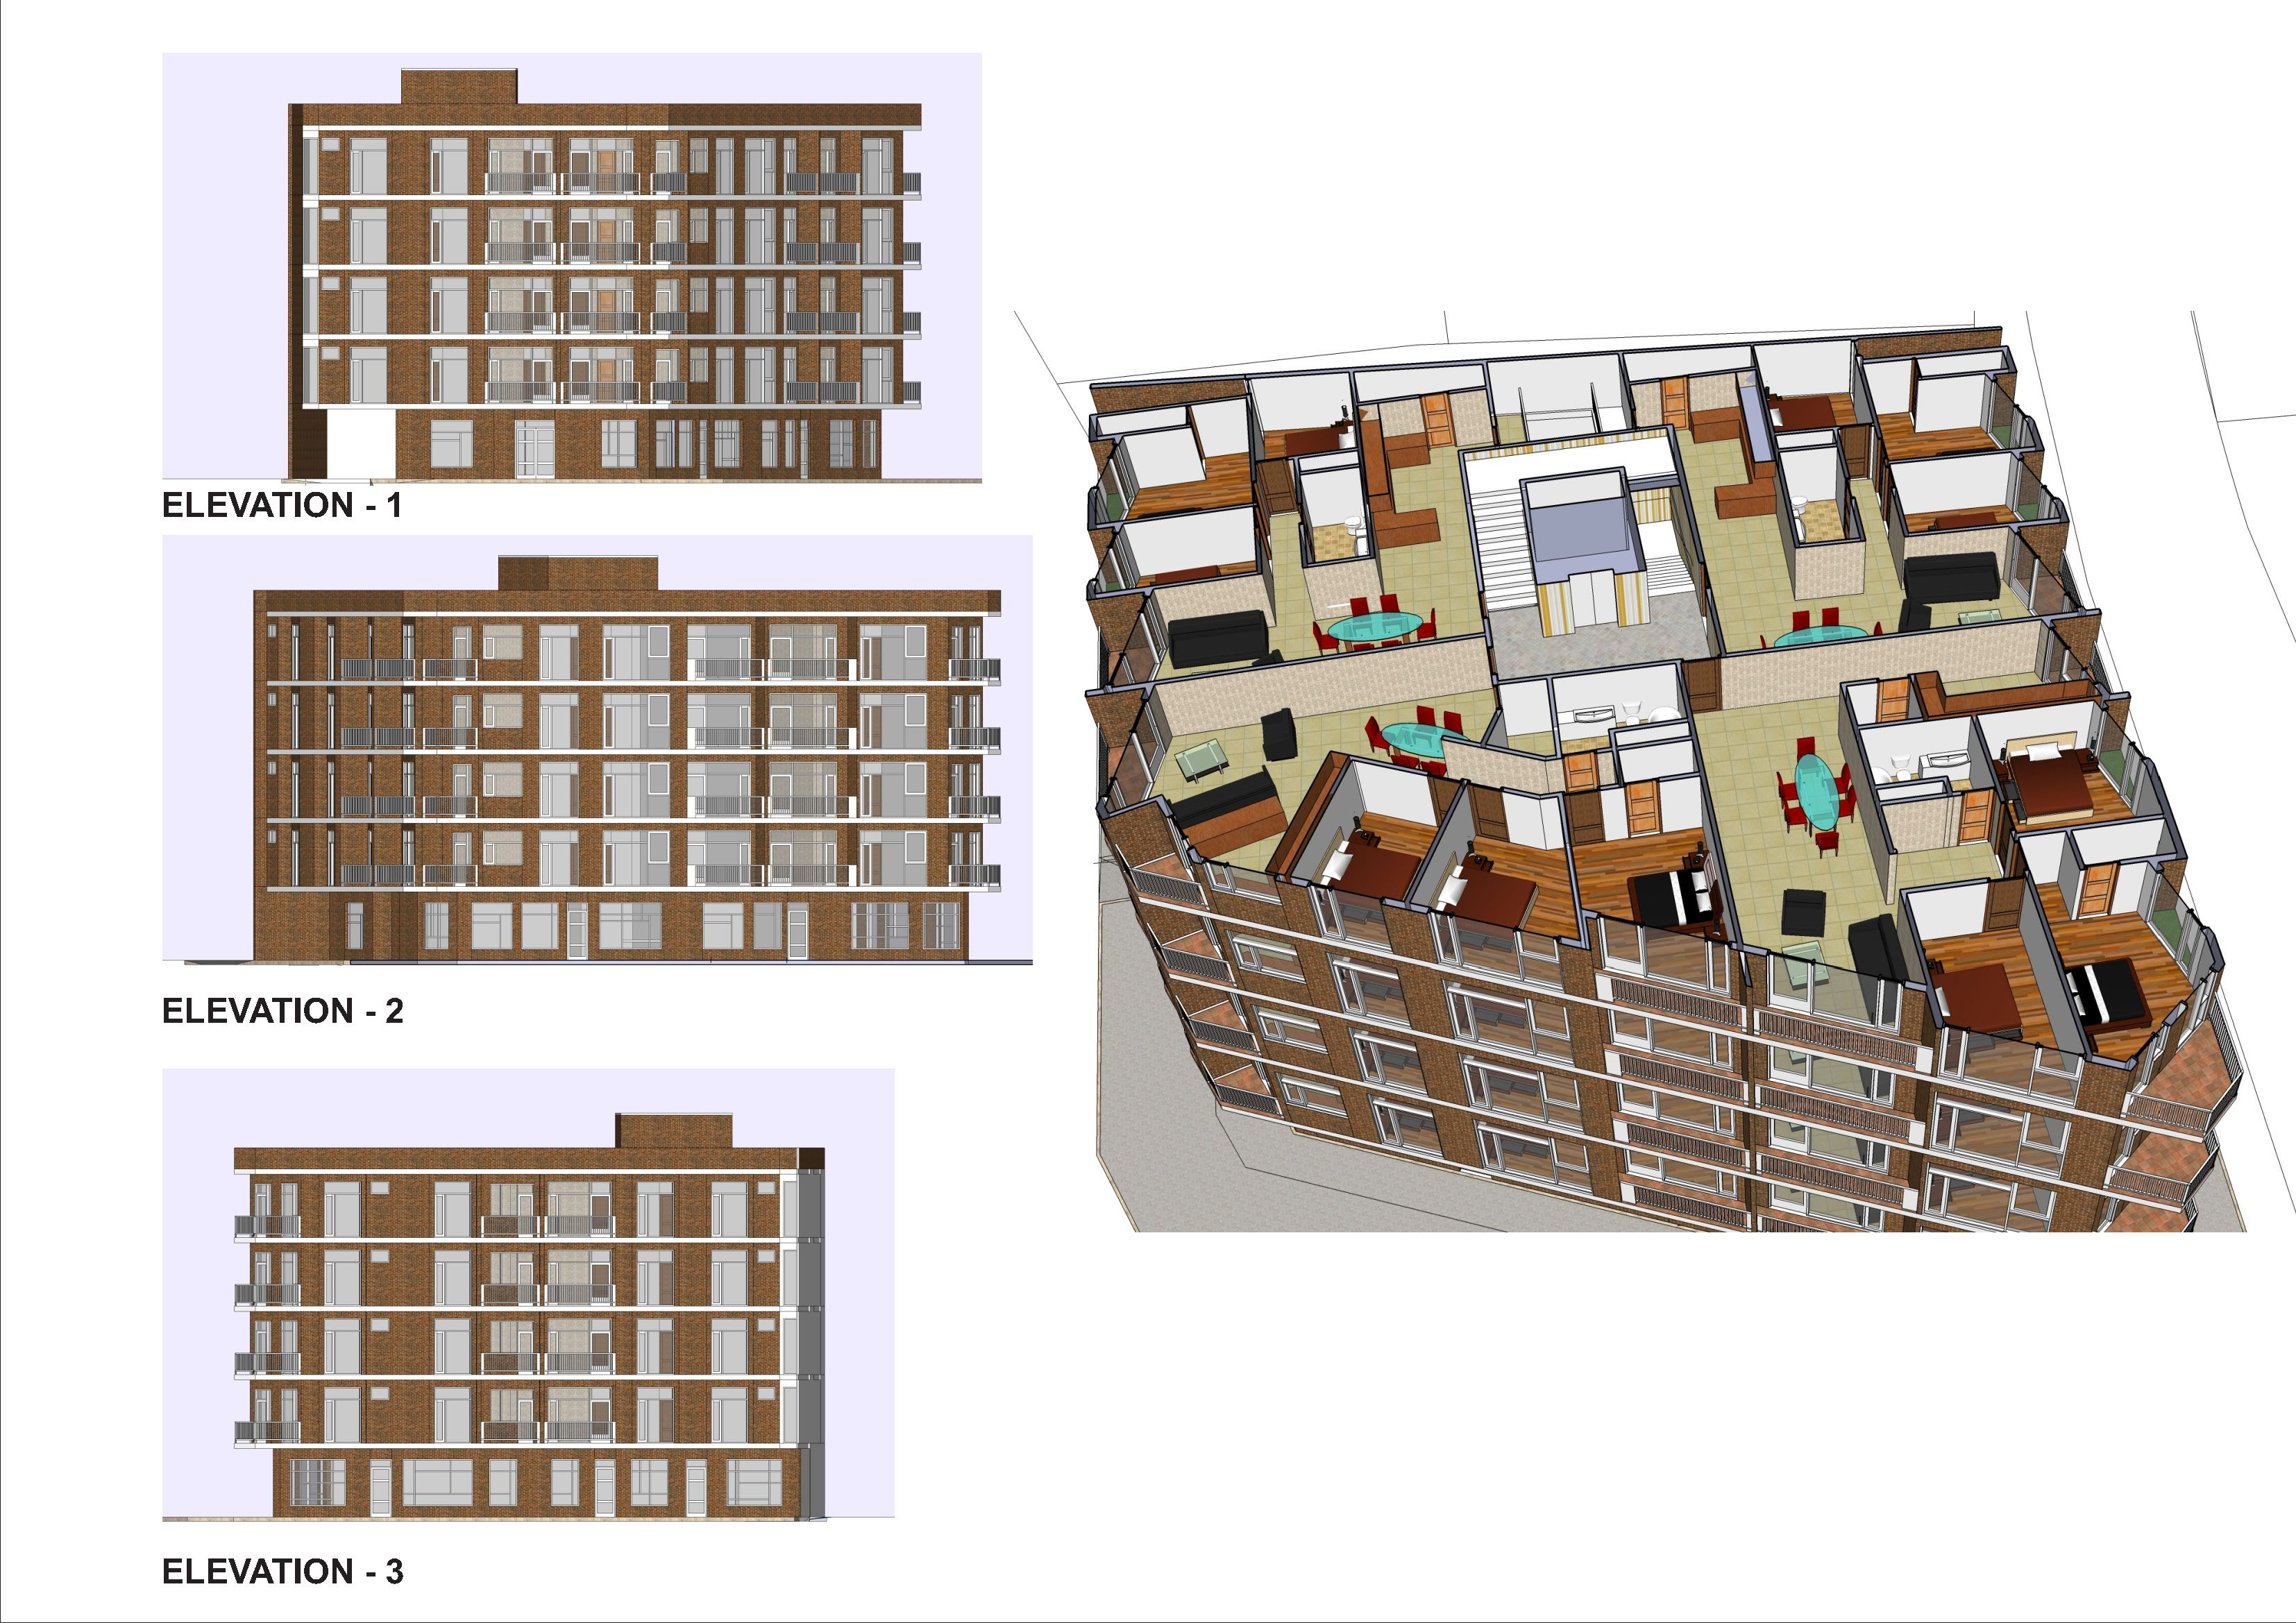 Apartment building plans location aksaray turkey new for Apartment building plans 2 units